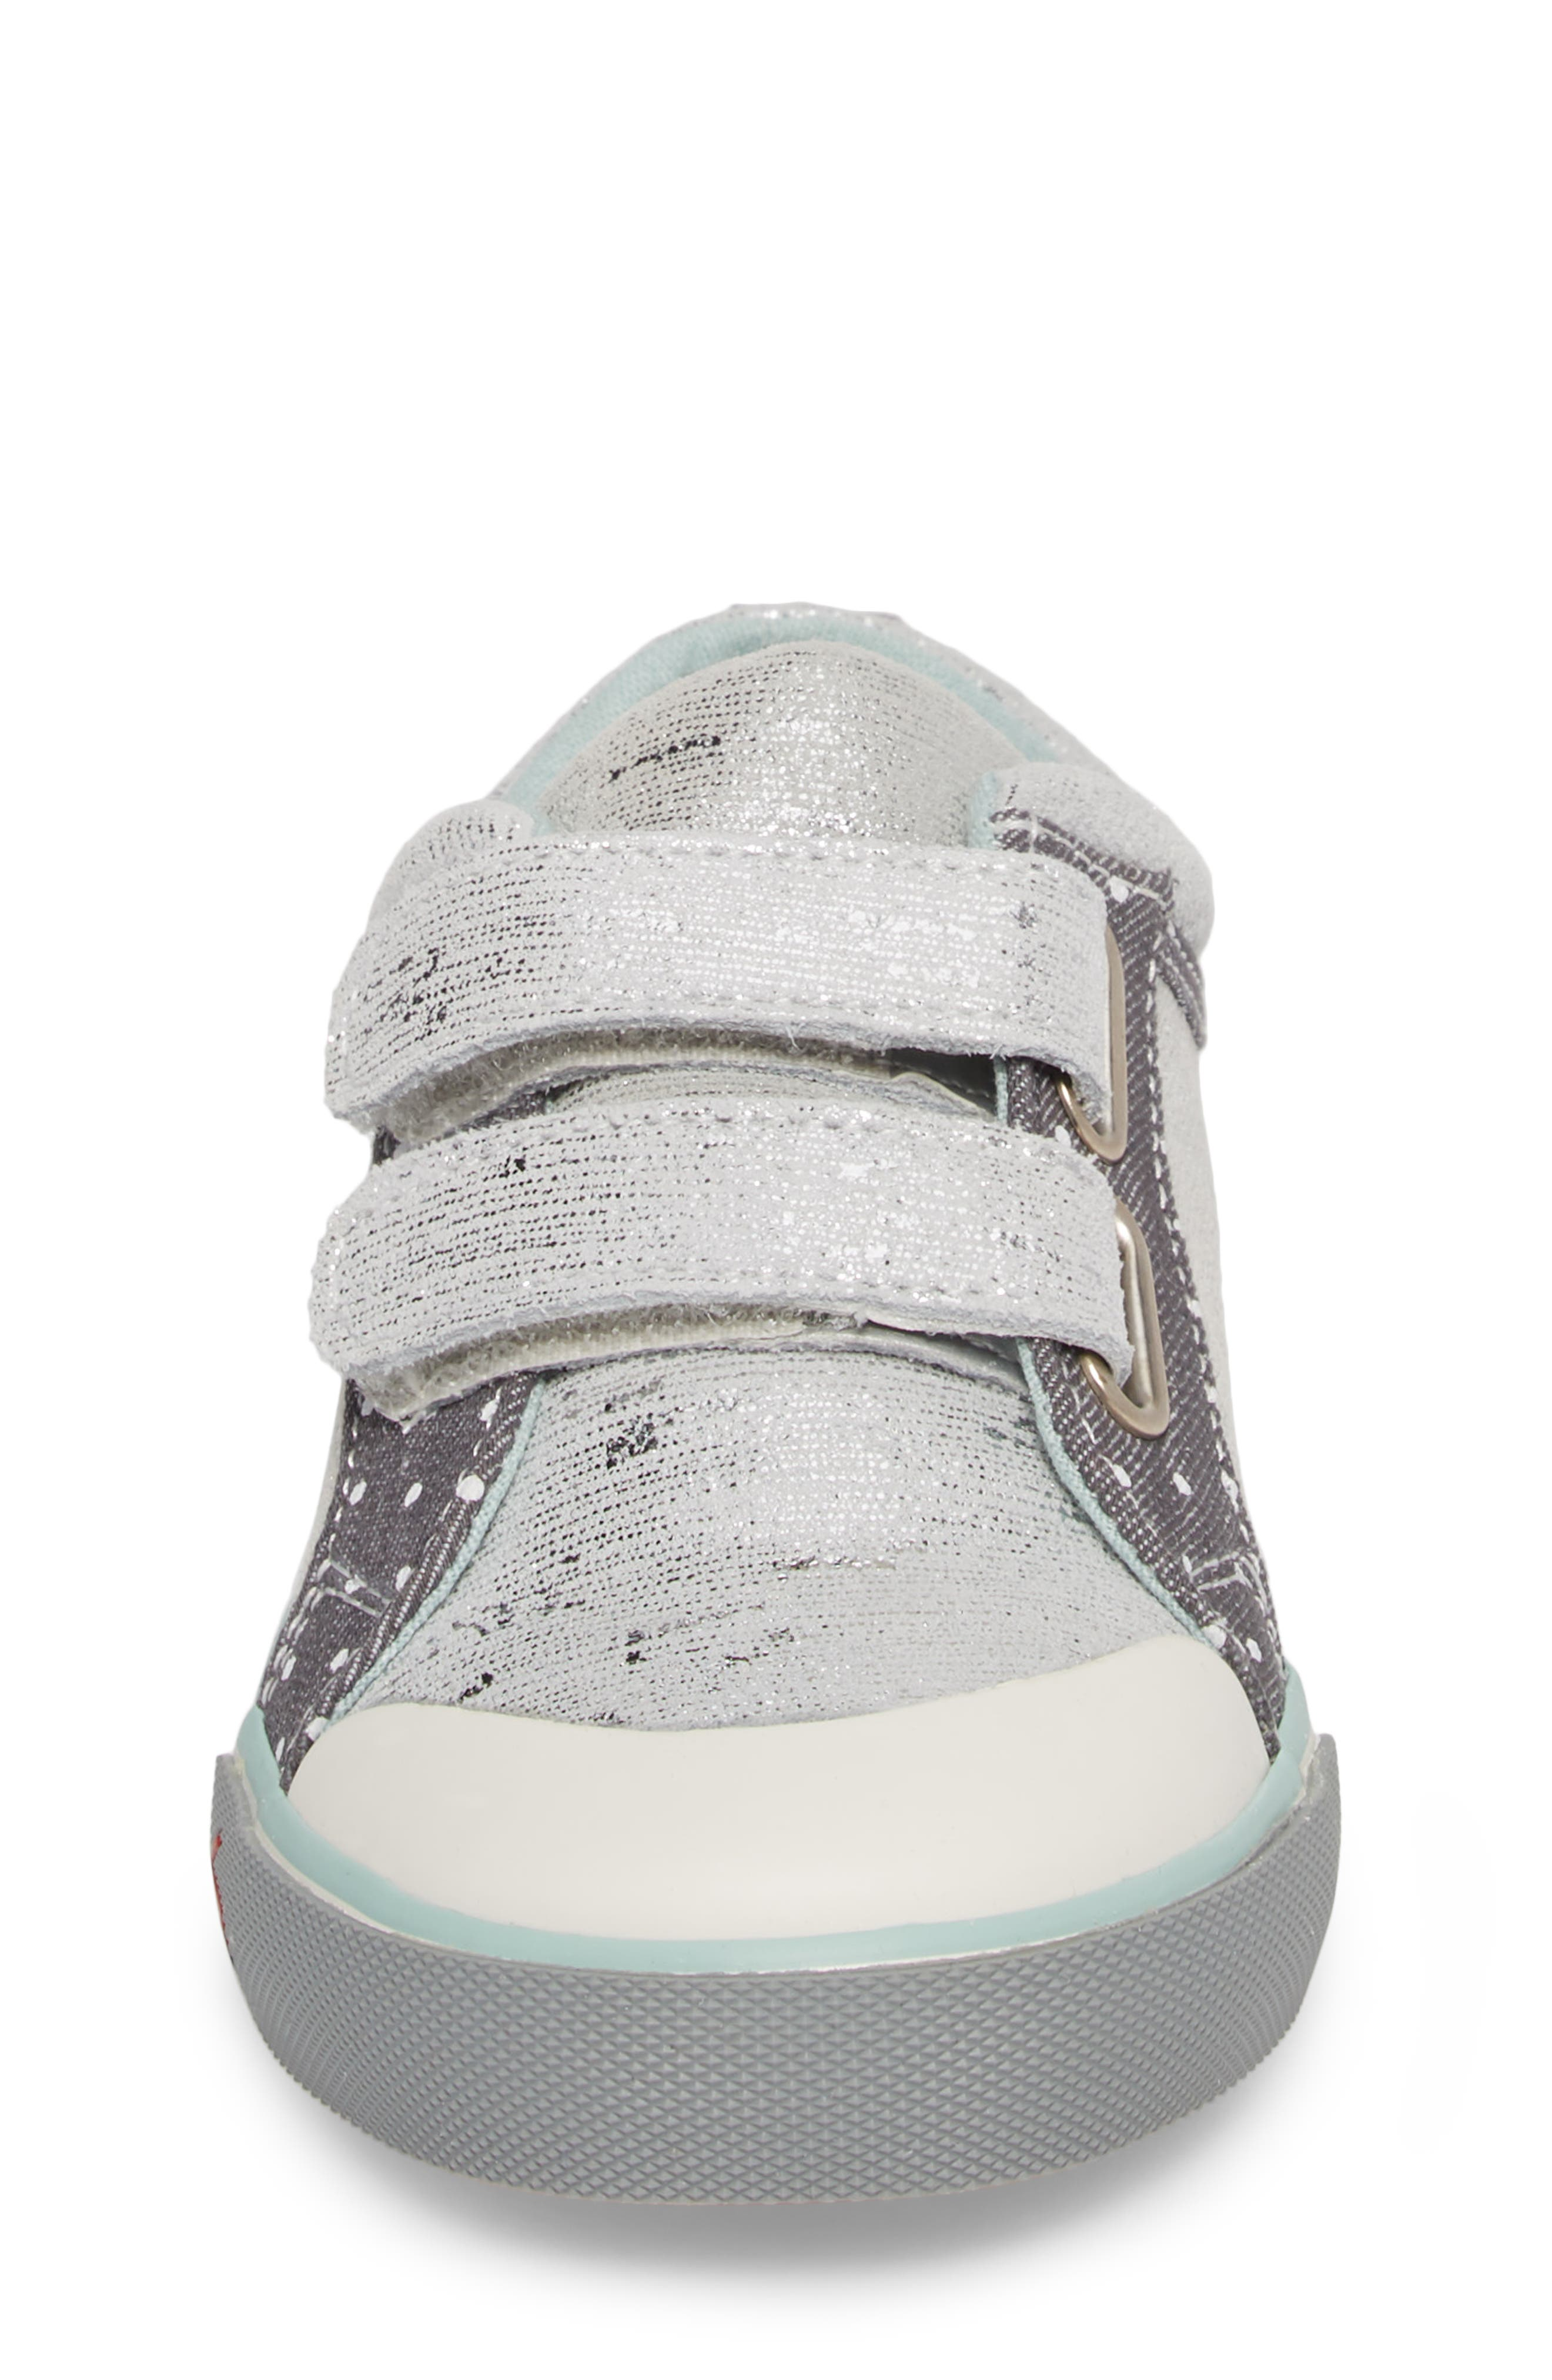 Robyne Sneaker,                             Alternate thumbnail 4, color,                             SILVER LEATHER